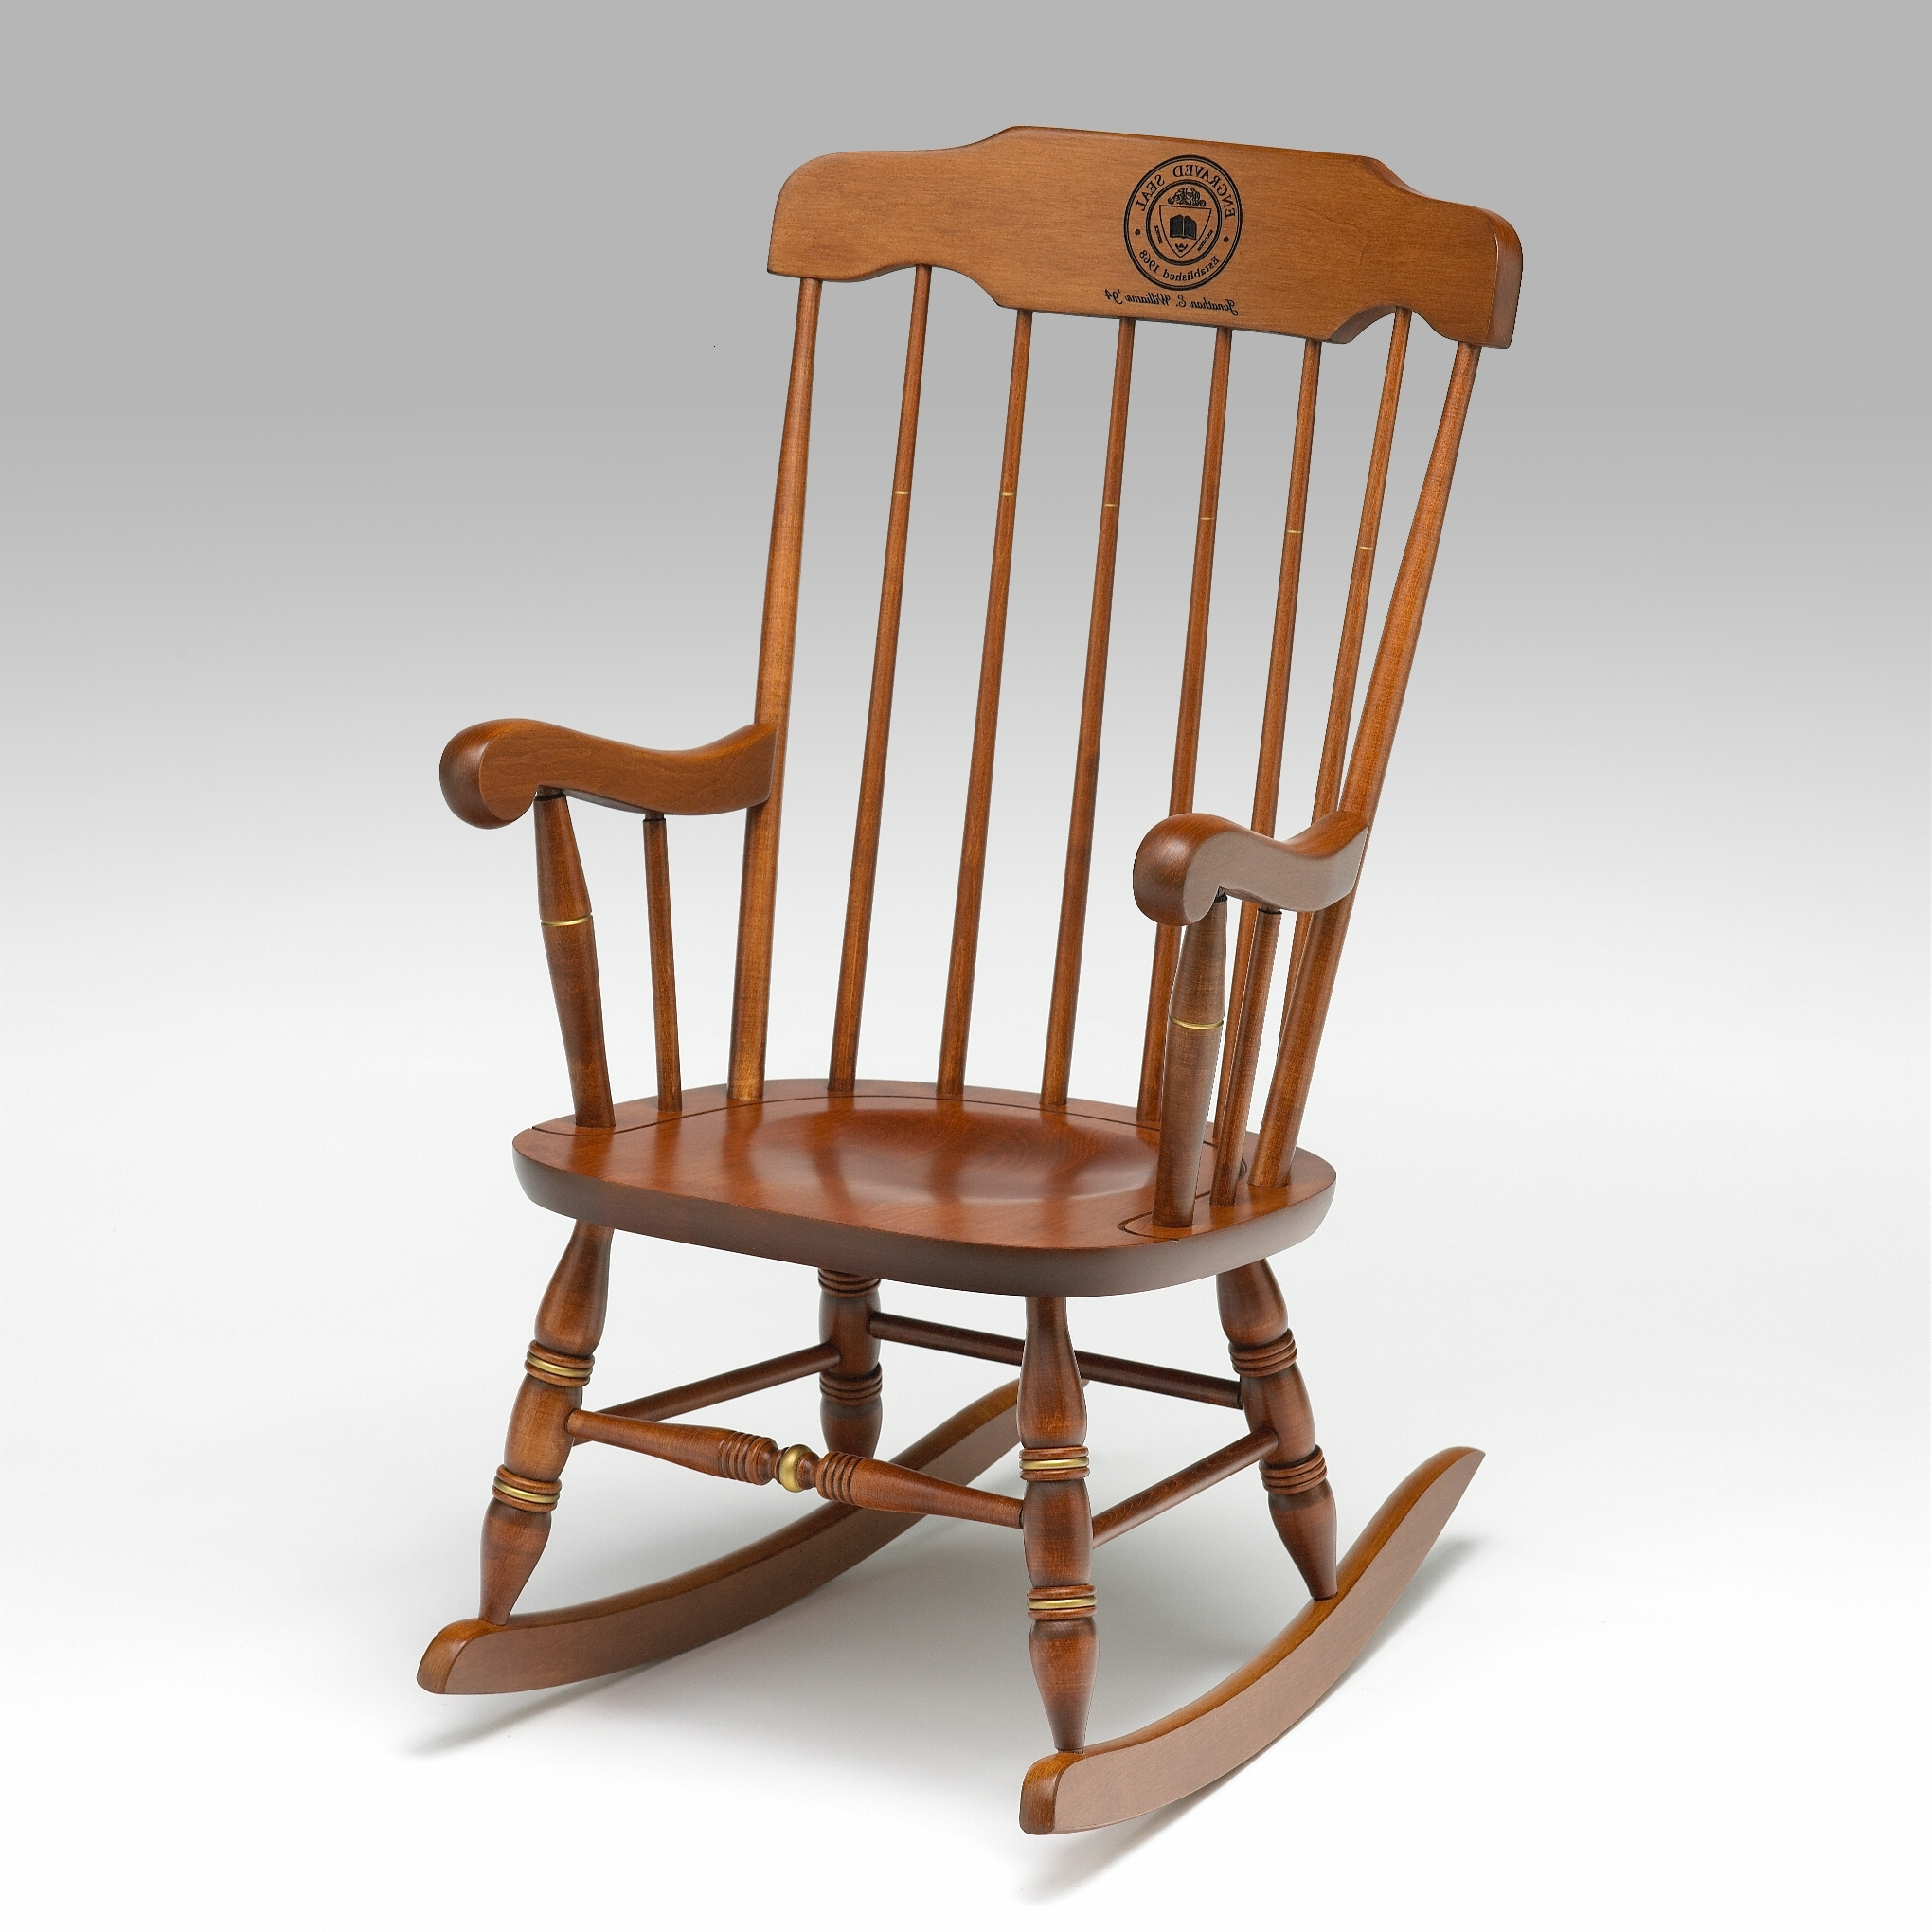 Favorite Rocking Chairs Throughout Help Me Safely Disassemble A Rocking Chair – Furniture Dit (View 3 of 20)